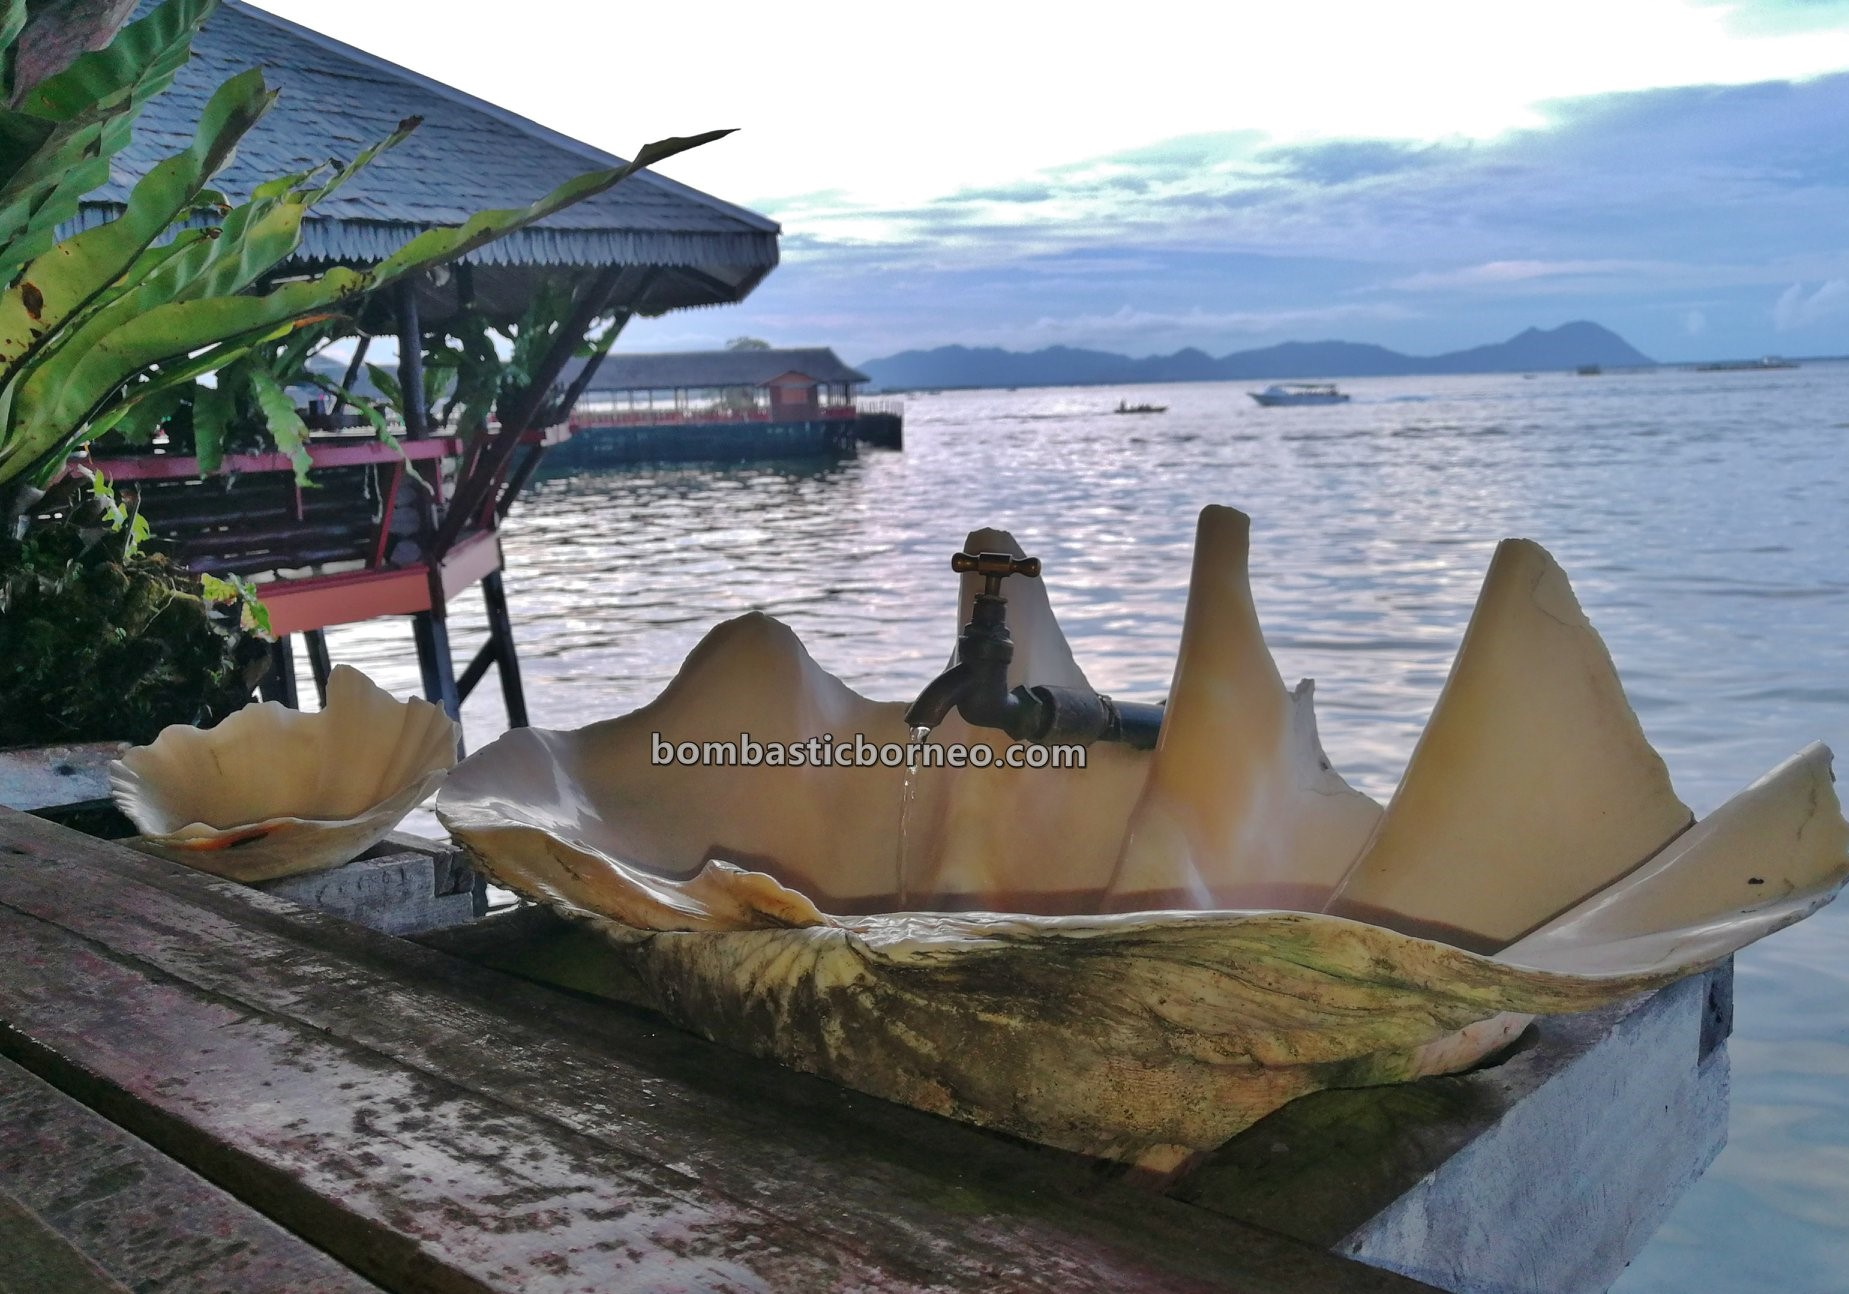 backpackers, destination, nature, island, Semporna, Tawau, Sabah, Malaysia, Tourism, tourist attraction, travel guide, Borneo,